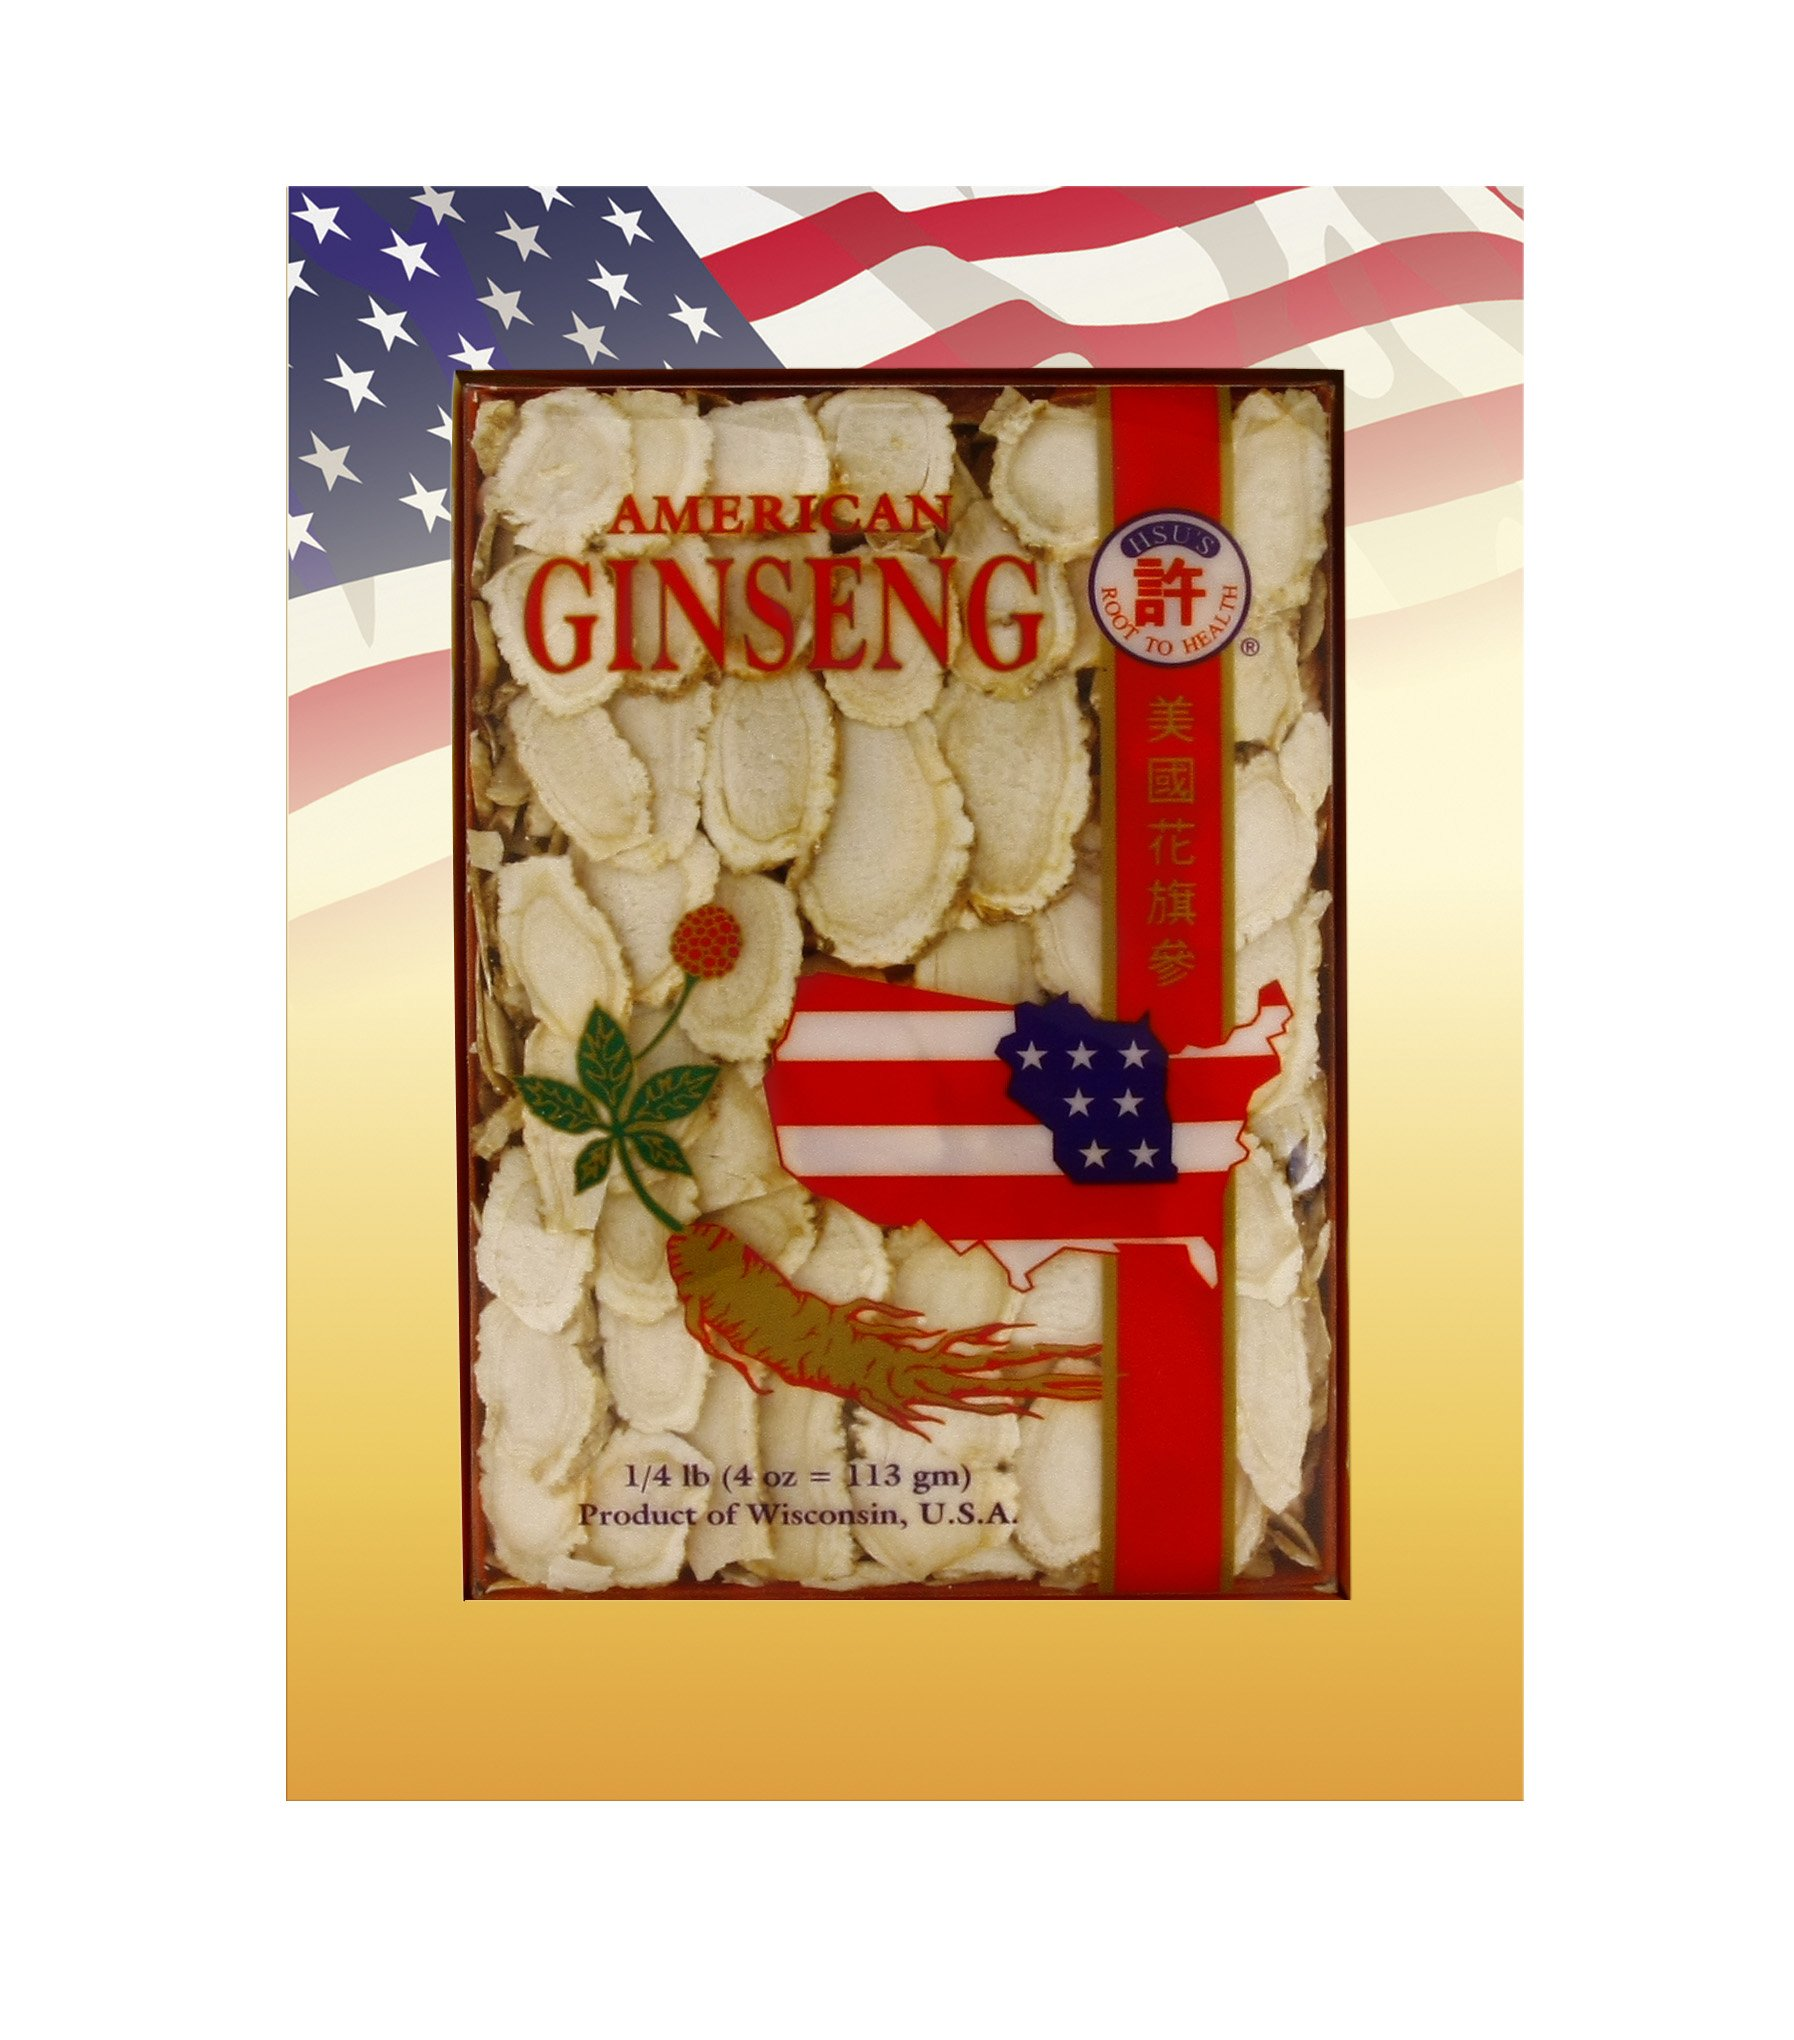 HSU's Ginseng SKU 0126-4 | Mixed Large-Medium Slices | Cultivated American Ginseng from Marathon County, Wisconsin USA w/One Free Single American Ginseng Tea Bag | 许氏花旗参 | 4oz Box, 西洋参, B01MSDEECQ